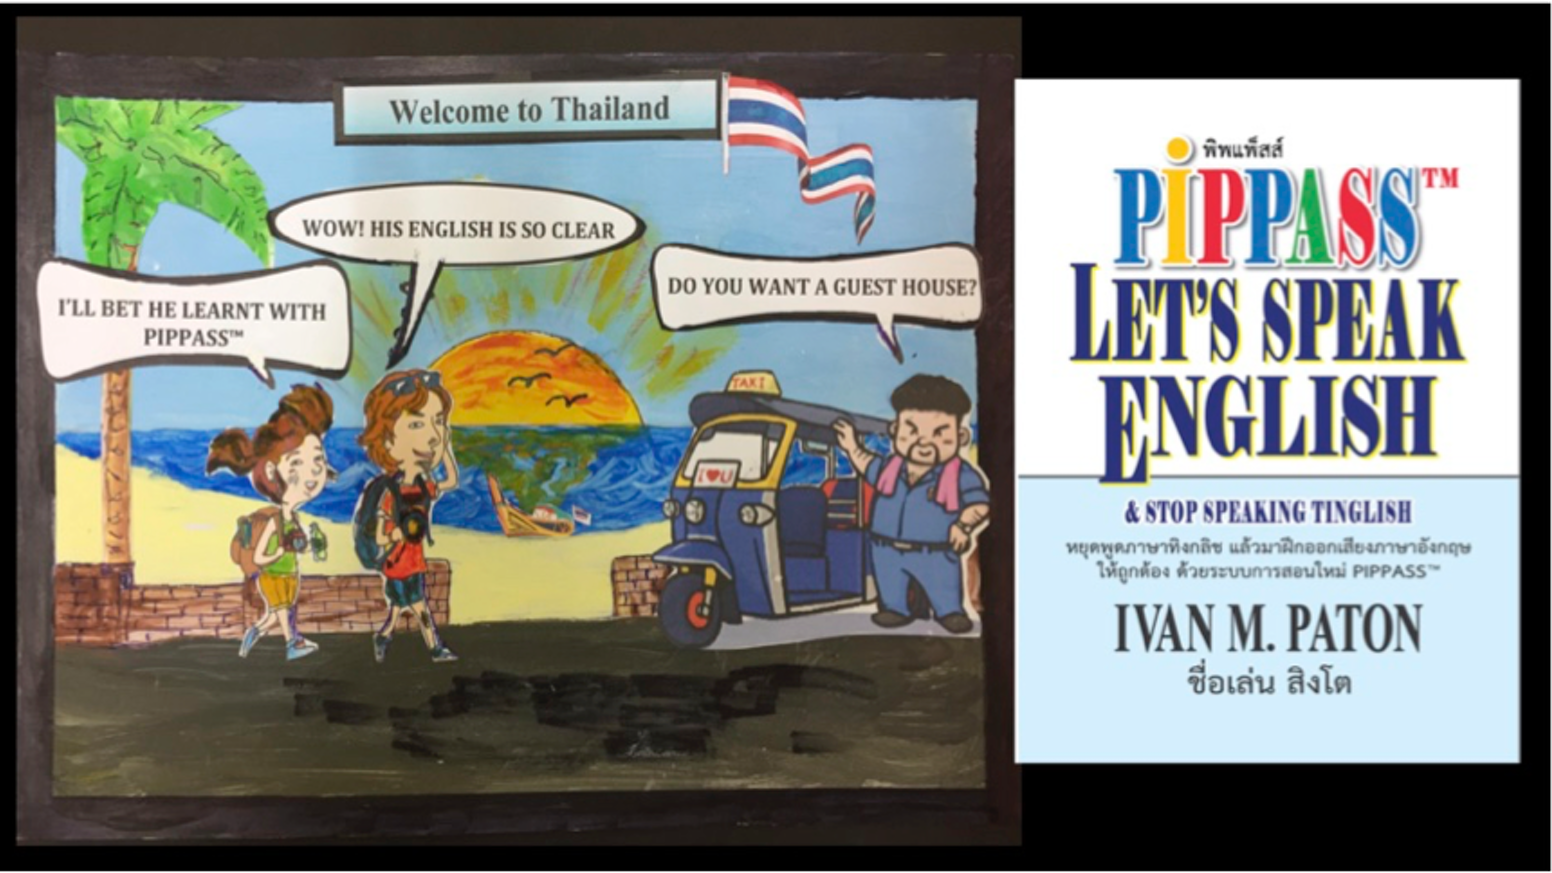 If you like Thai people, and Thailand, you'll LOVE this book & project to  help Thai people improve their English - (October 2018)